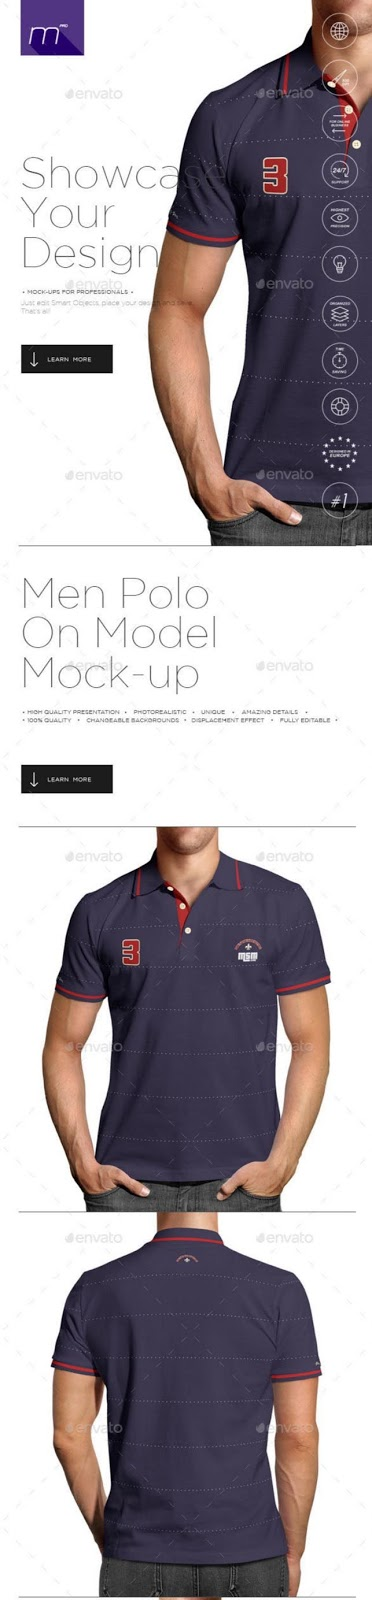 14. Polo Shirt on Model Mockup